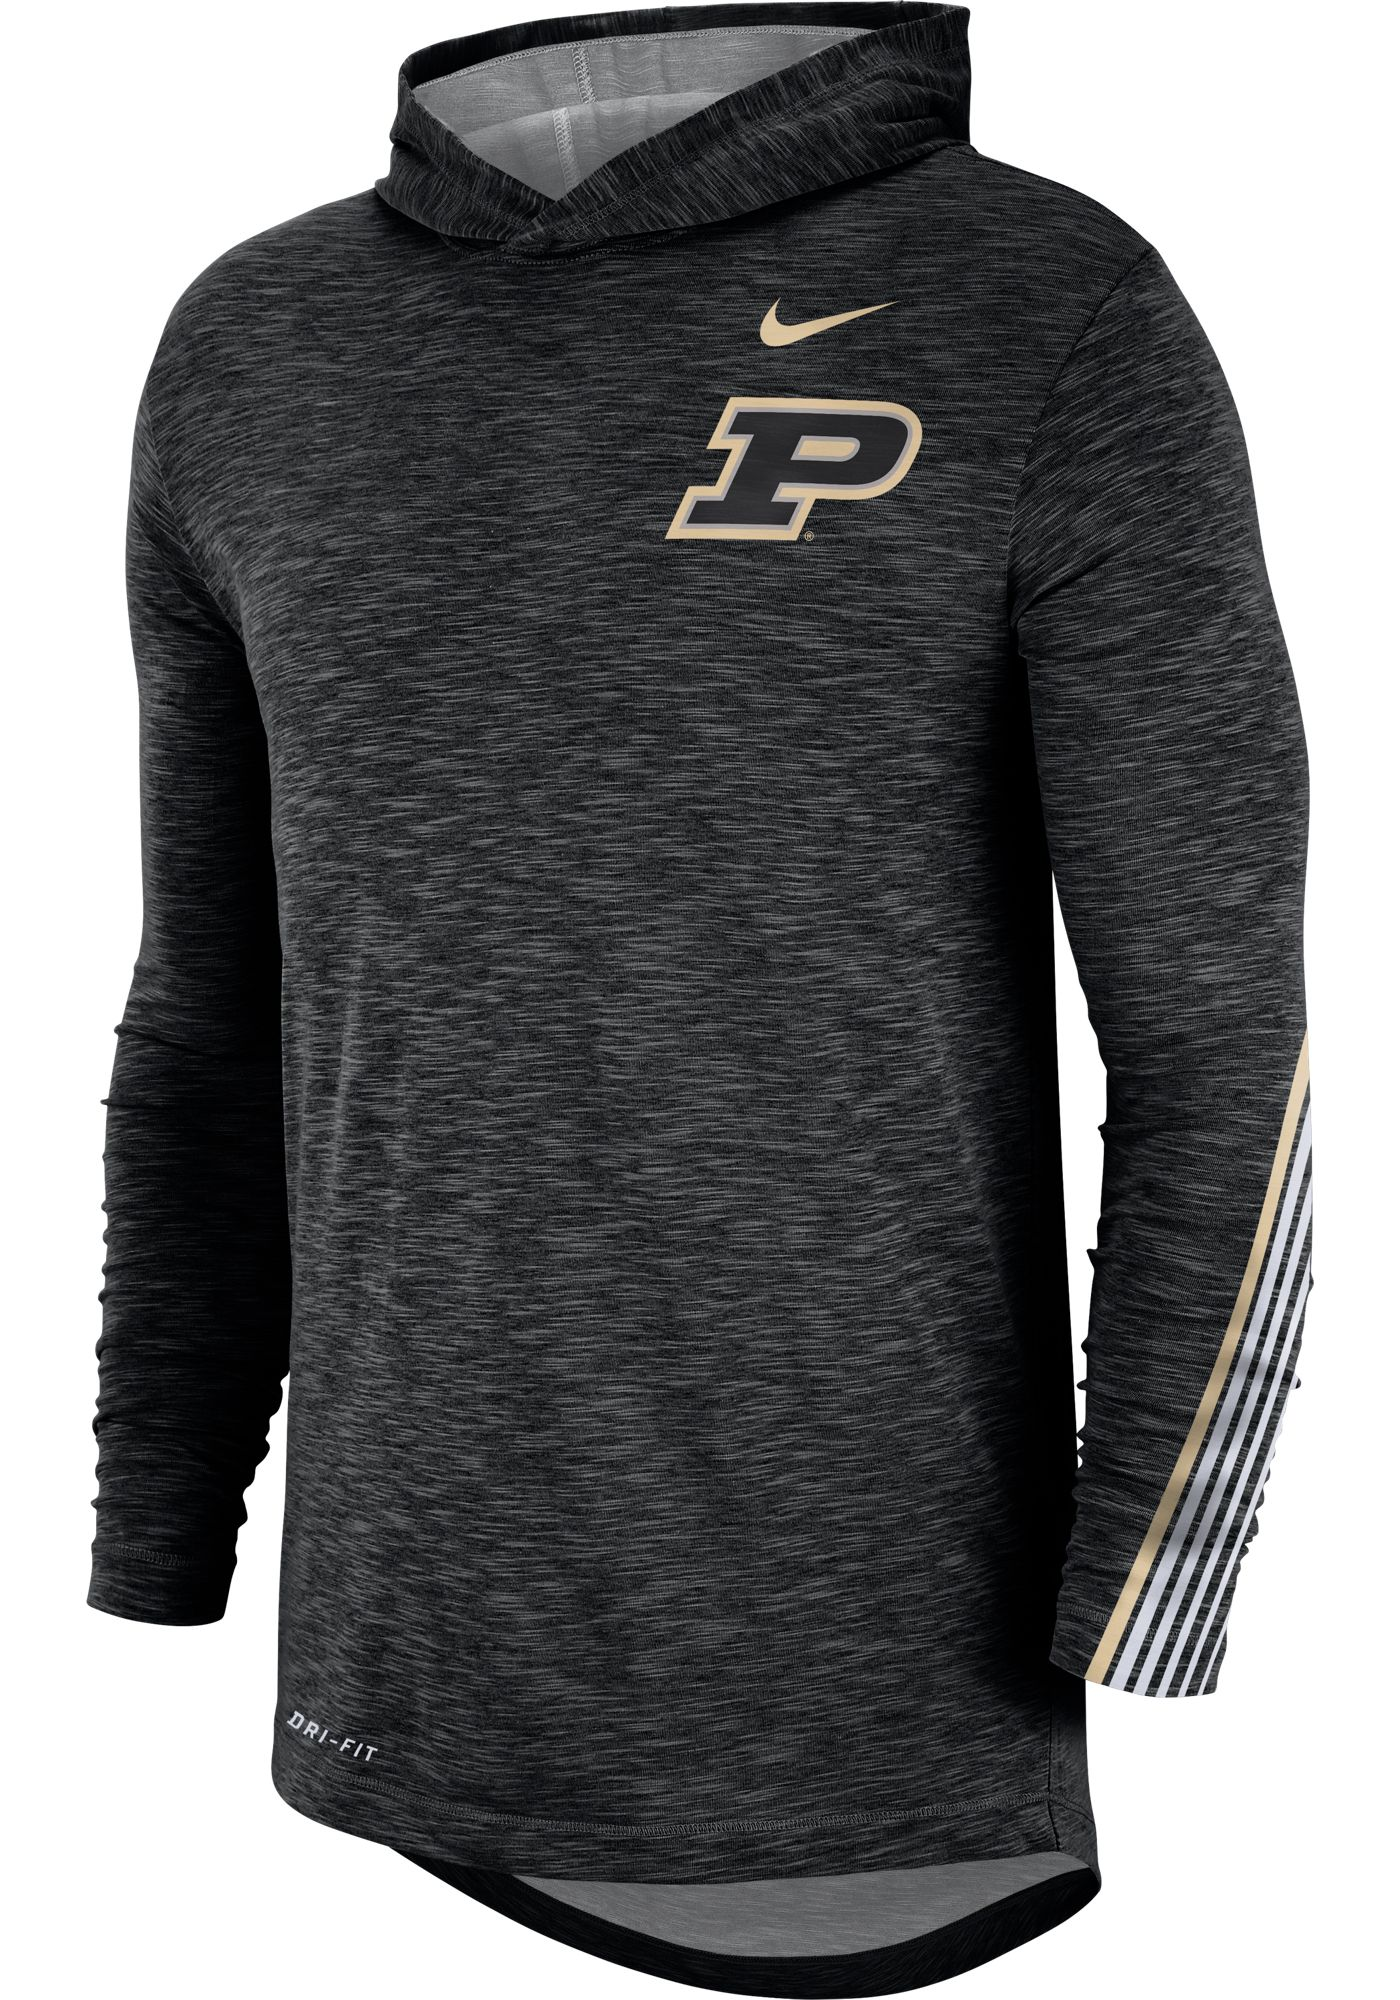 Nike Men's Purdue Boilermakers Cotton Long Sleeve Hoodie Black T-Shirt